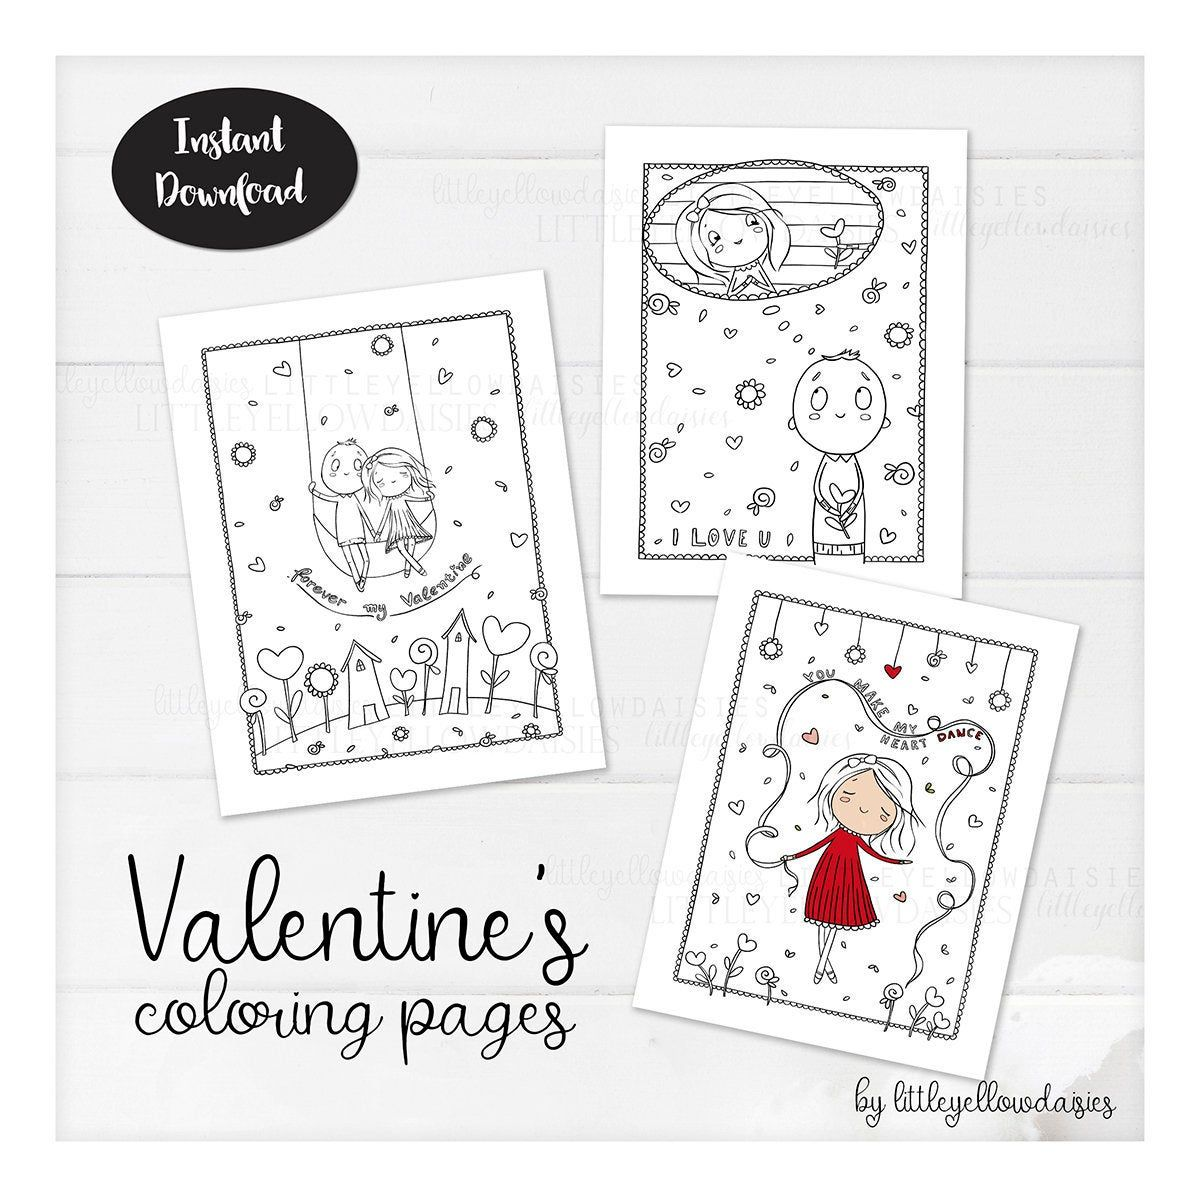 Valentine S Day Coloring Pages Love Coloring Papers Valentine Games Activities For Kids Sheets To Color Printable Instant Download In 2020 Valentines Day Coloring Page Valentines Day Coloring Valentines Games